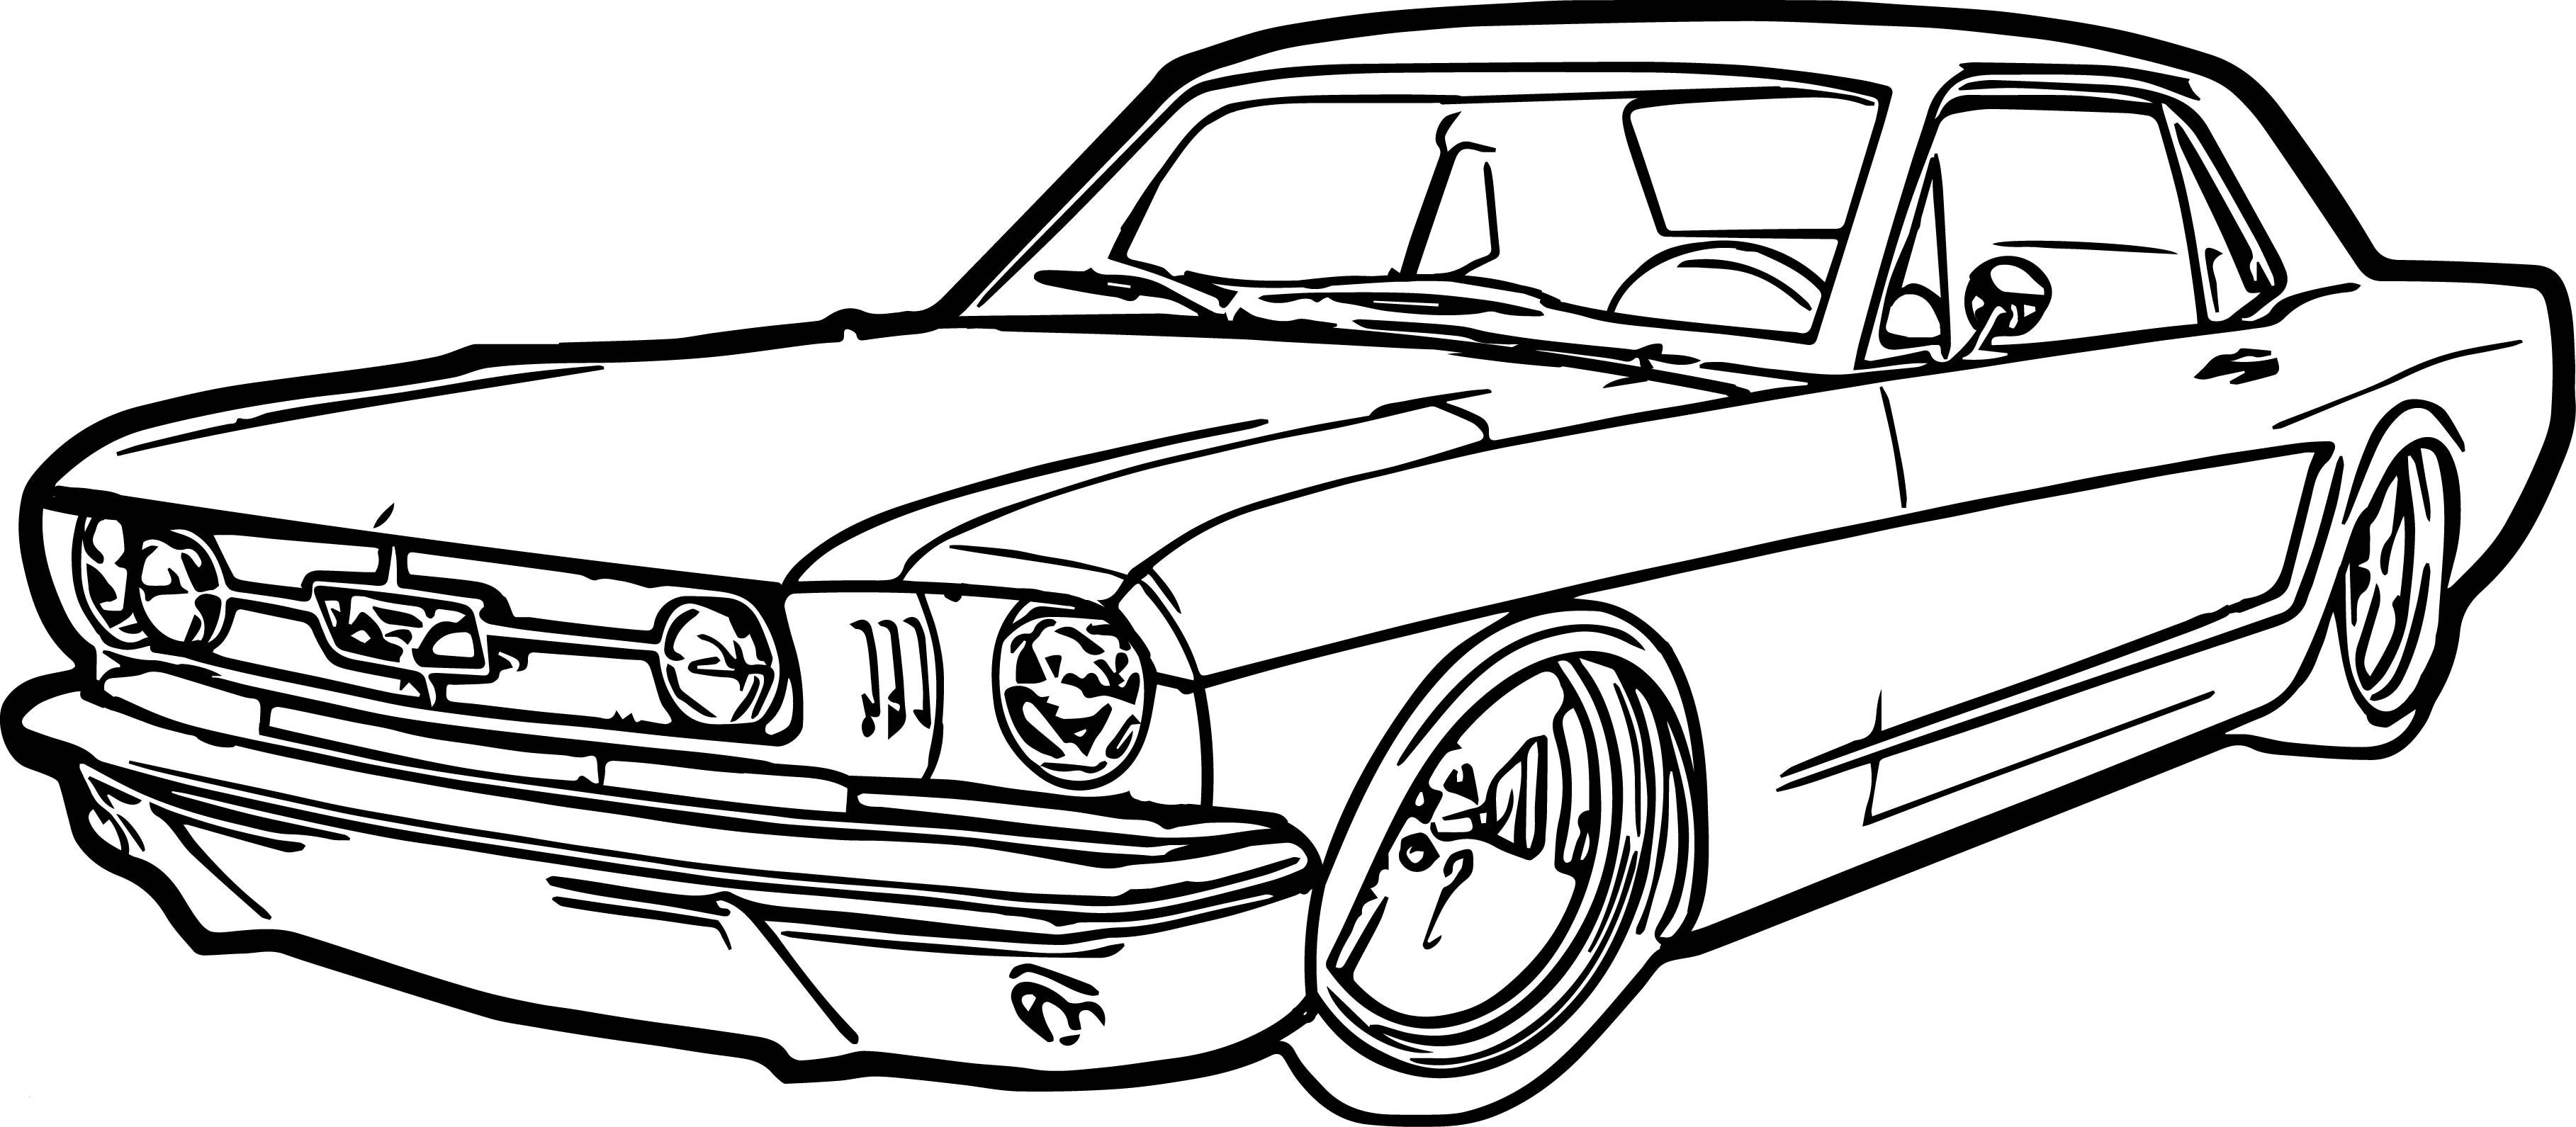 Ford Mustang Drawing Free Download Best Ford Mustang